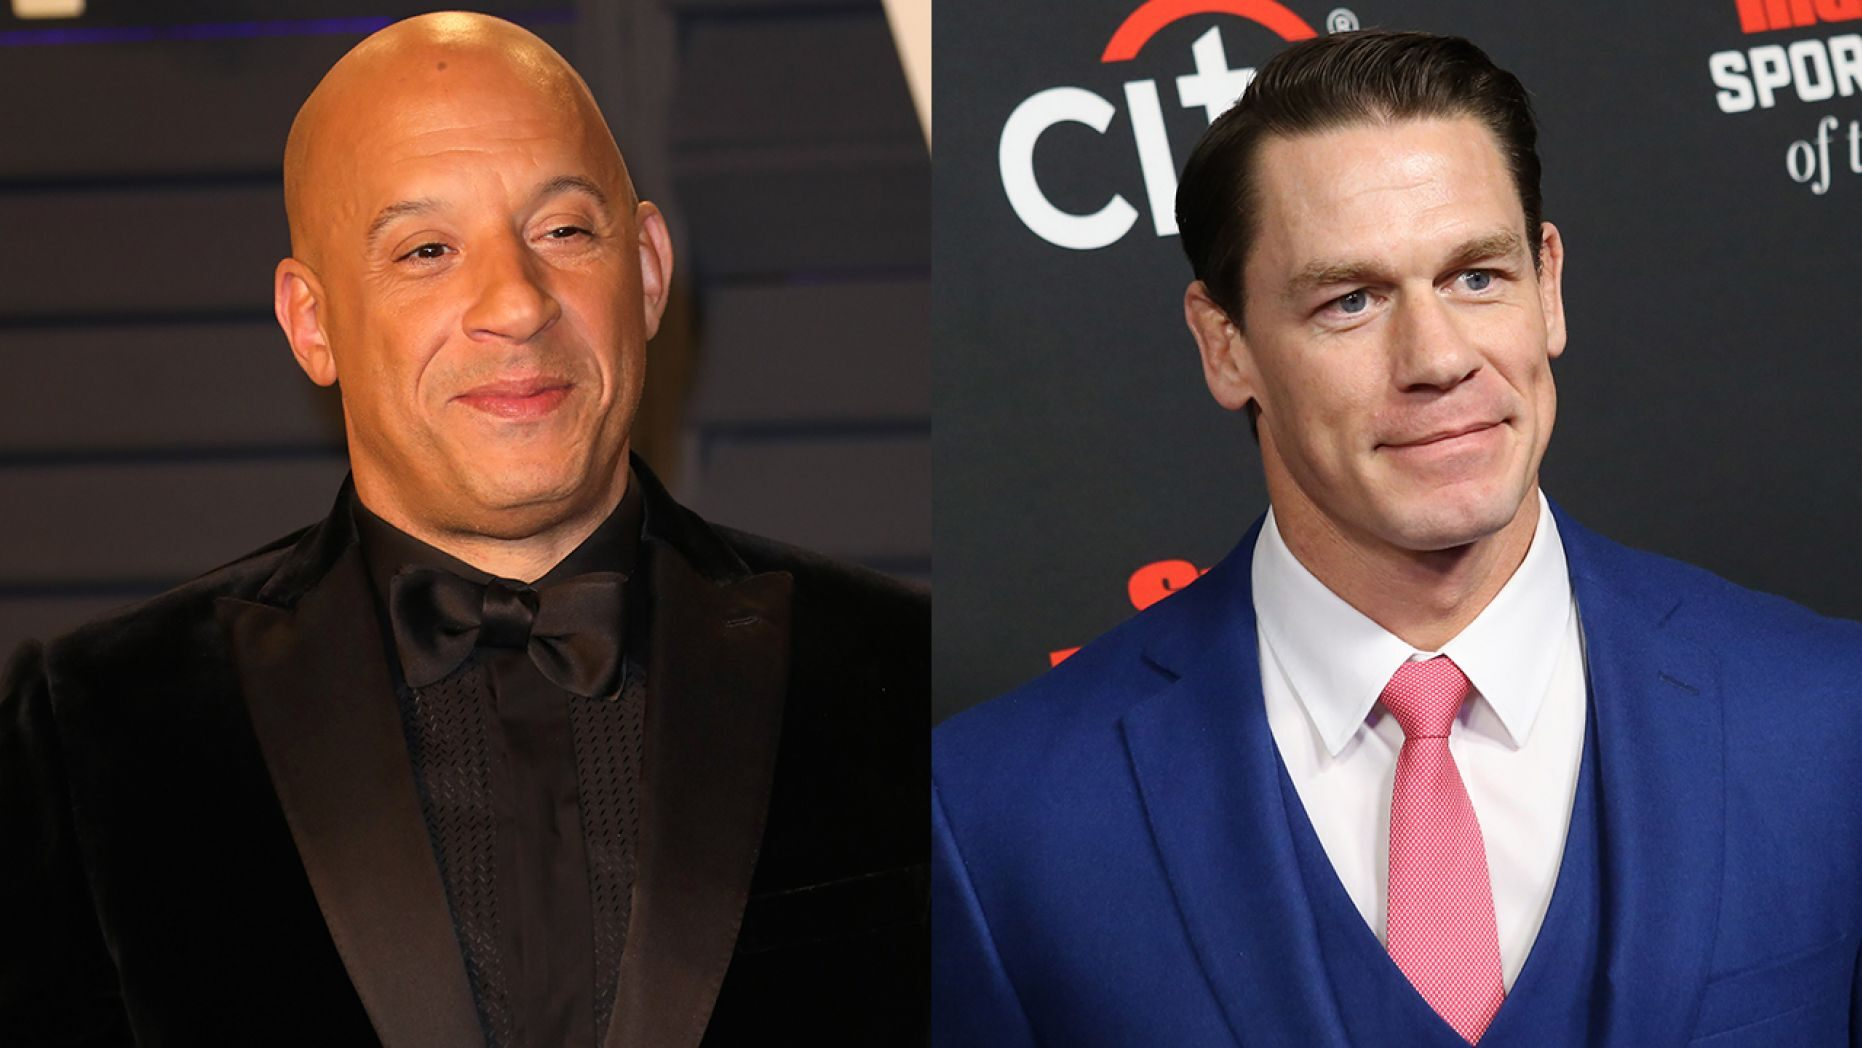 Vin Diesel praises John Cena ahead of 'Fast and Furious 9' release